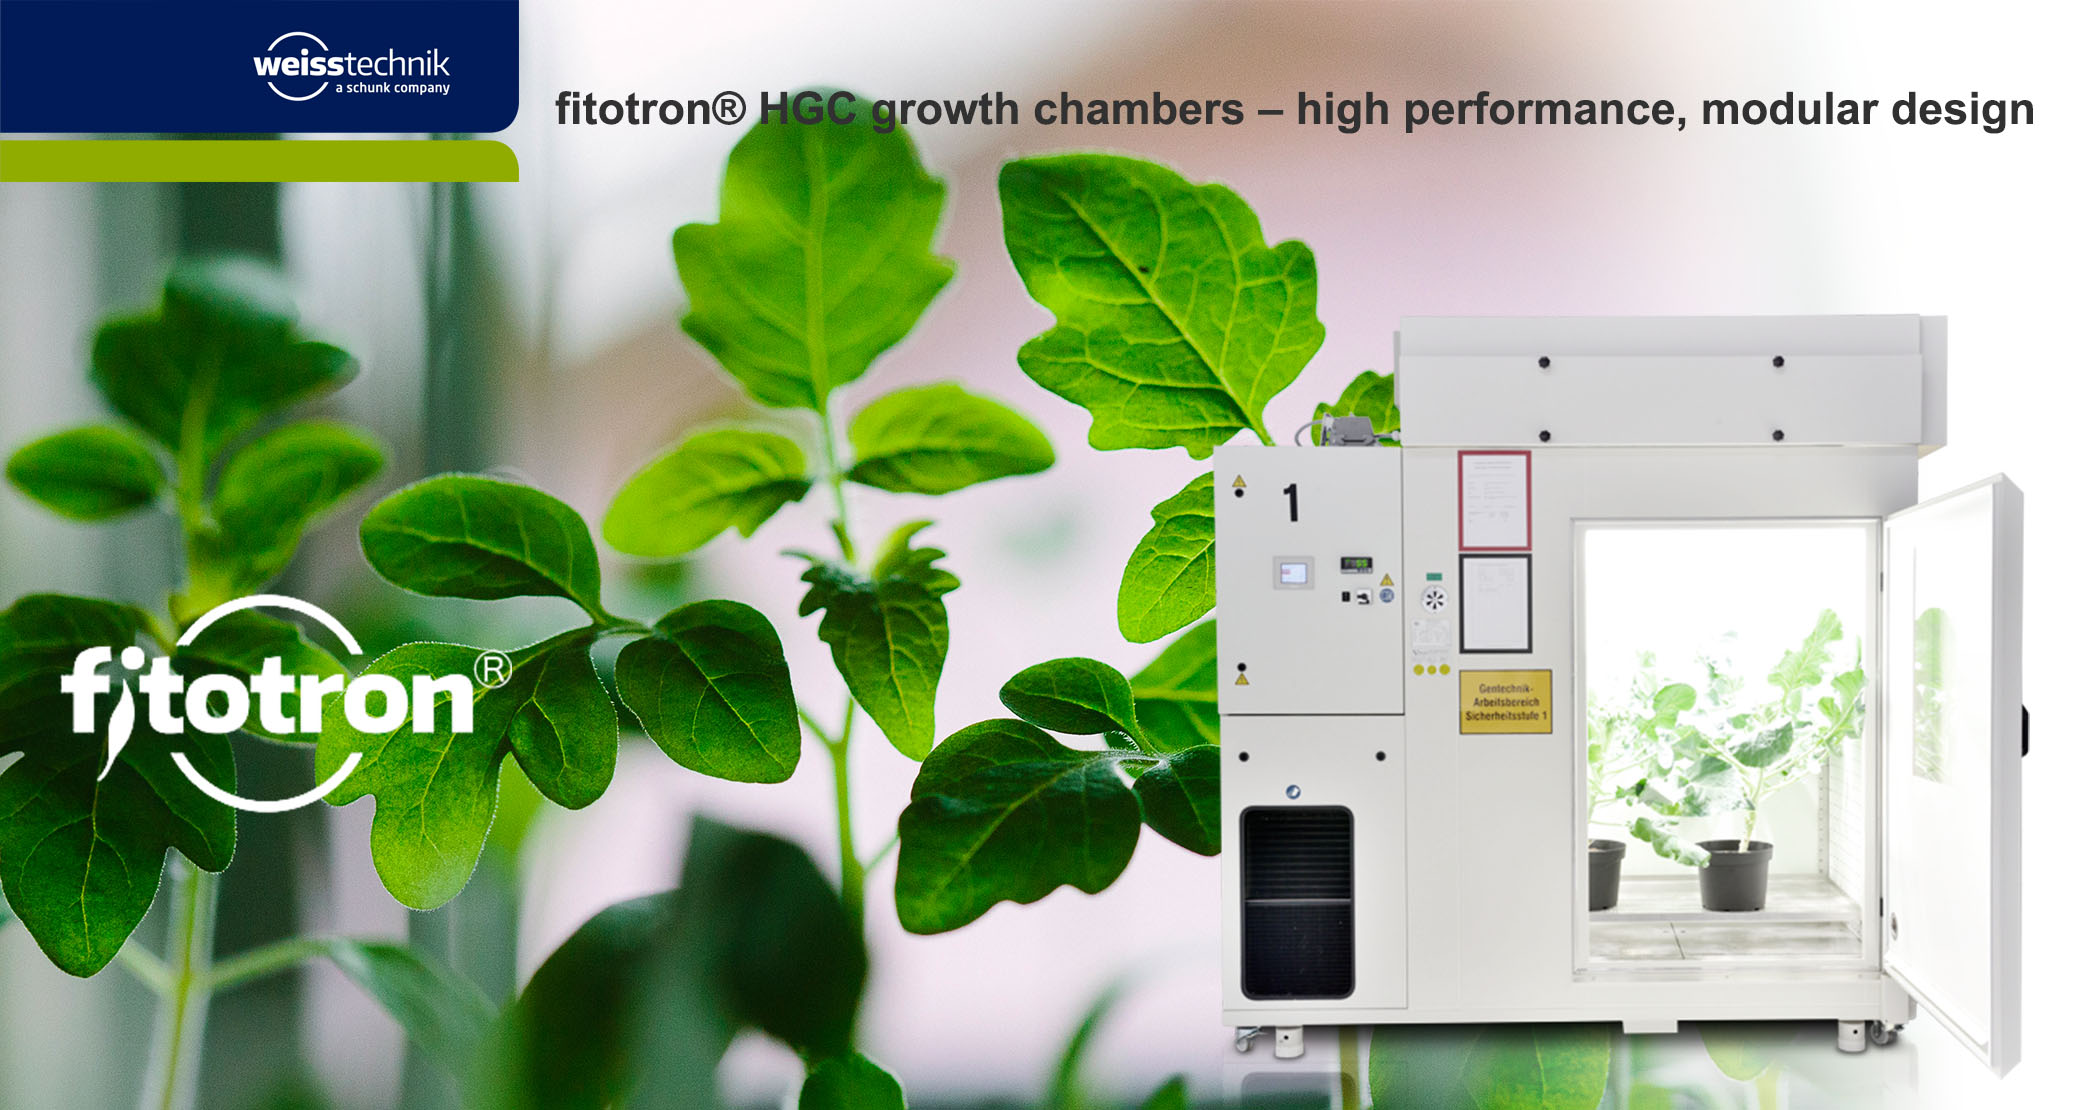 Fitotron HGC modular plant growth chambers